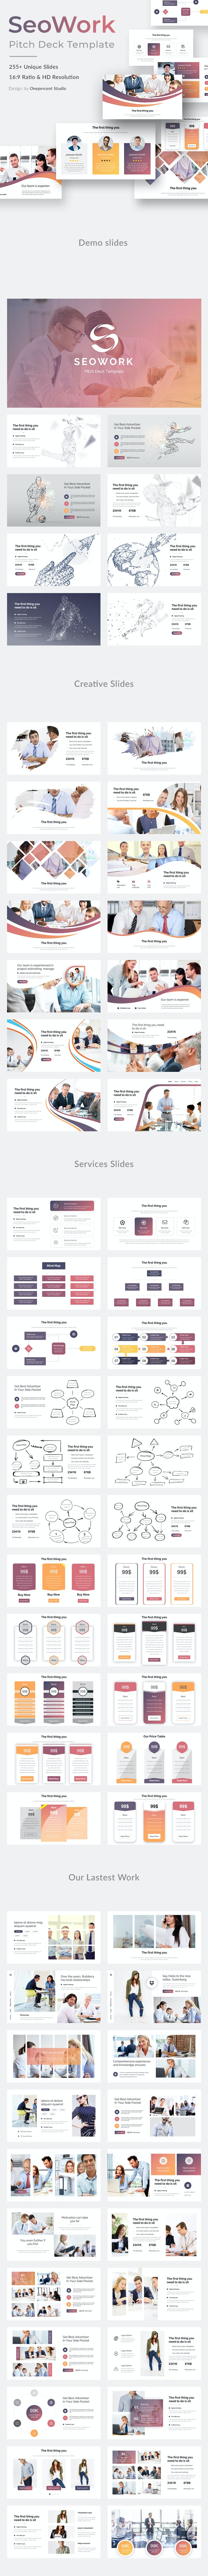 SeoWork Pitch Deck 2019 Powerpoint Template - Business PowerPoint Templates